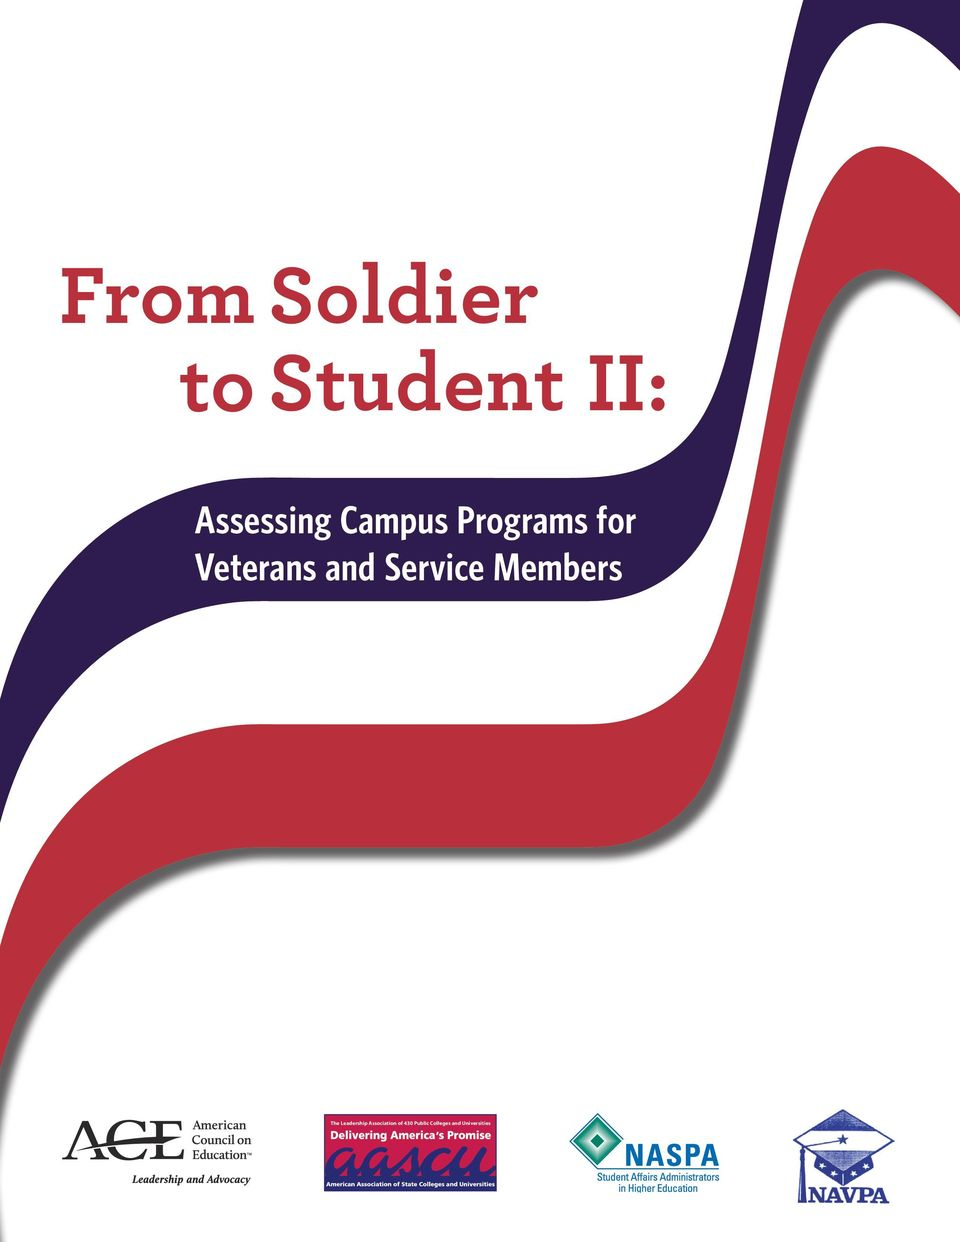 Soldier to Student II: Assessing